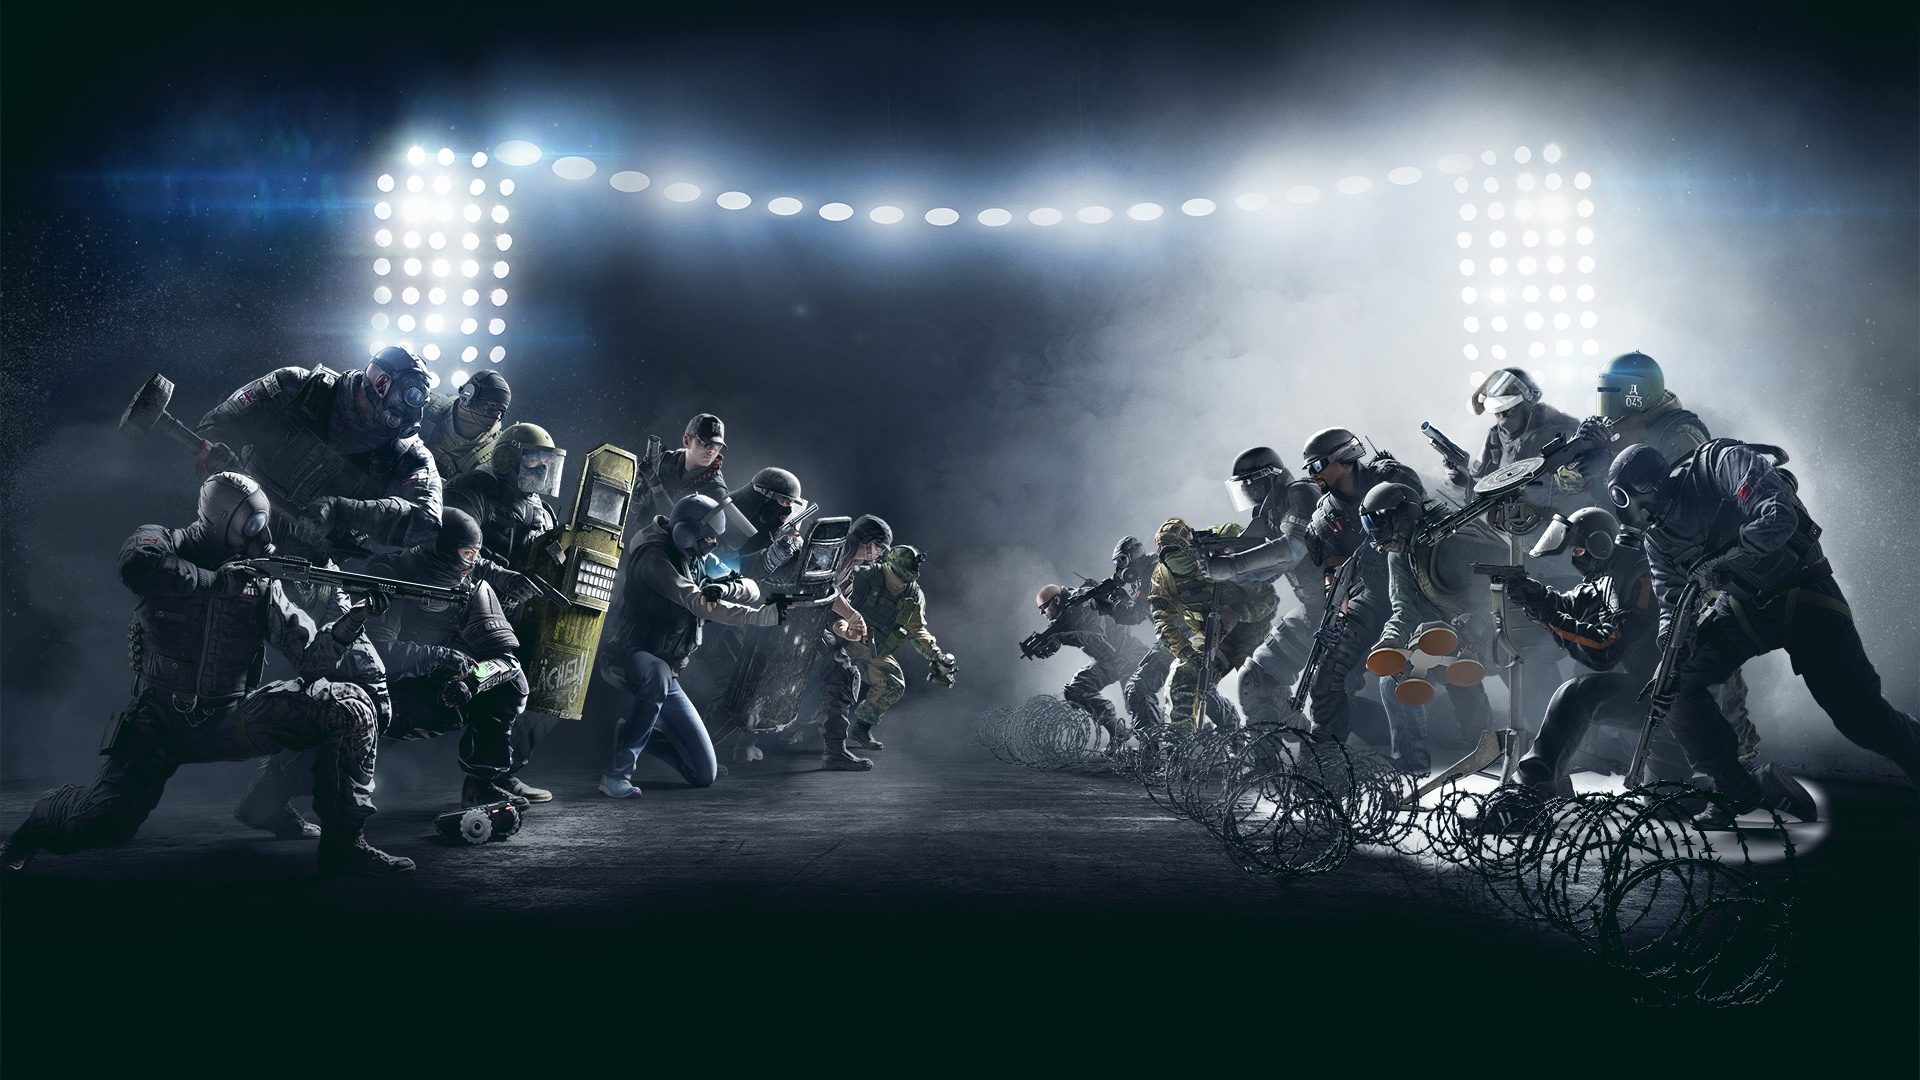 Tom clancy 39 s rainbow six siege wallpapers pictures images for Fond ecran r6